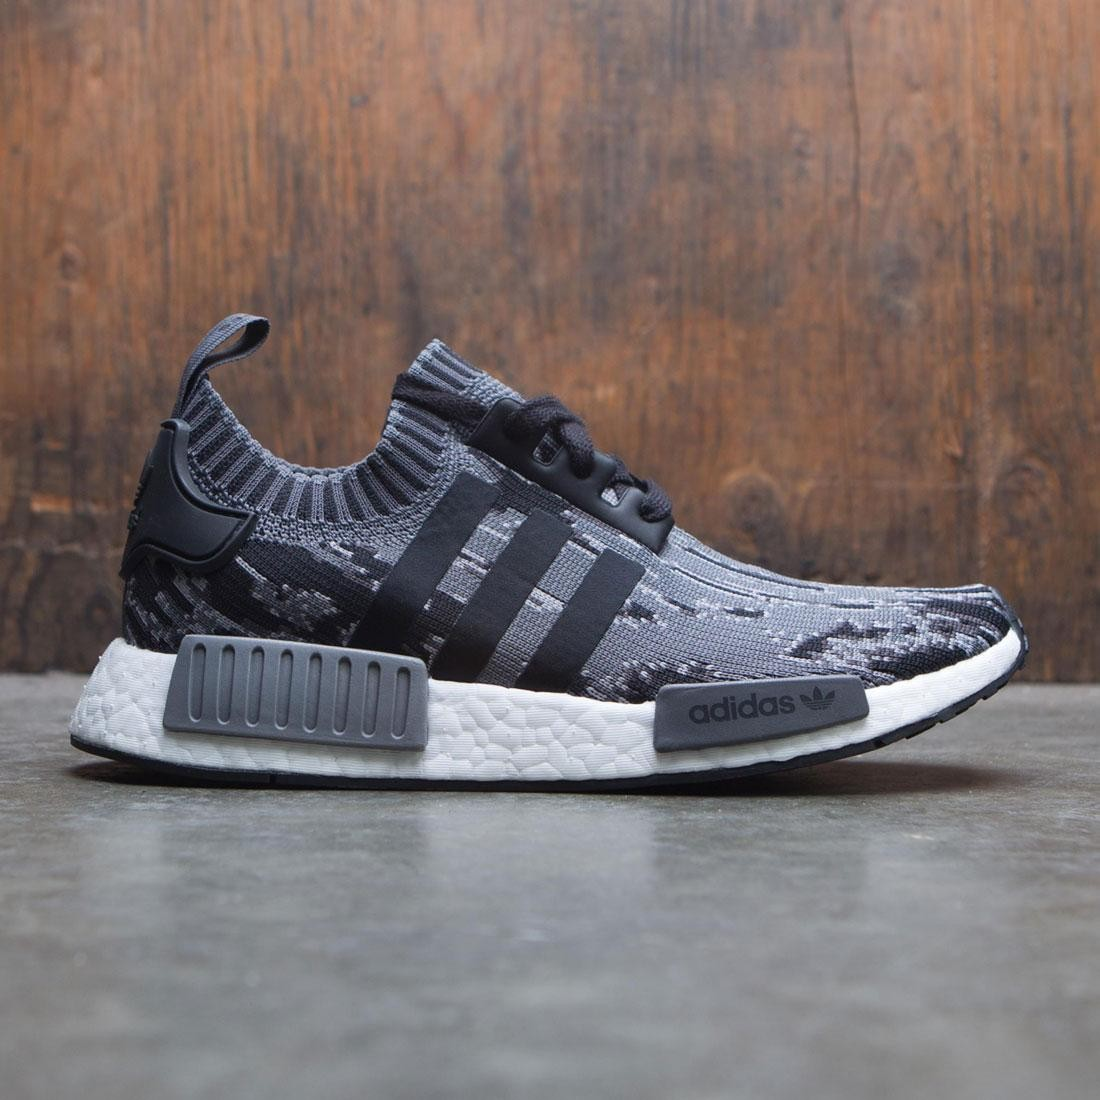 half off aaff0 cc5ce Adidas Men NMD R1 Primeknit (black / core black / grey three)